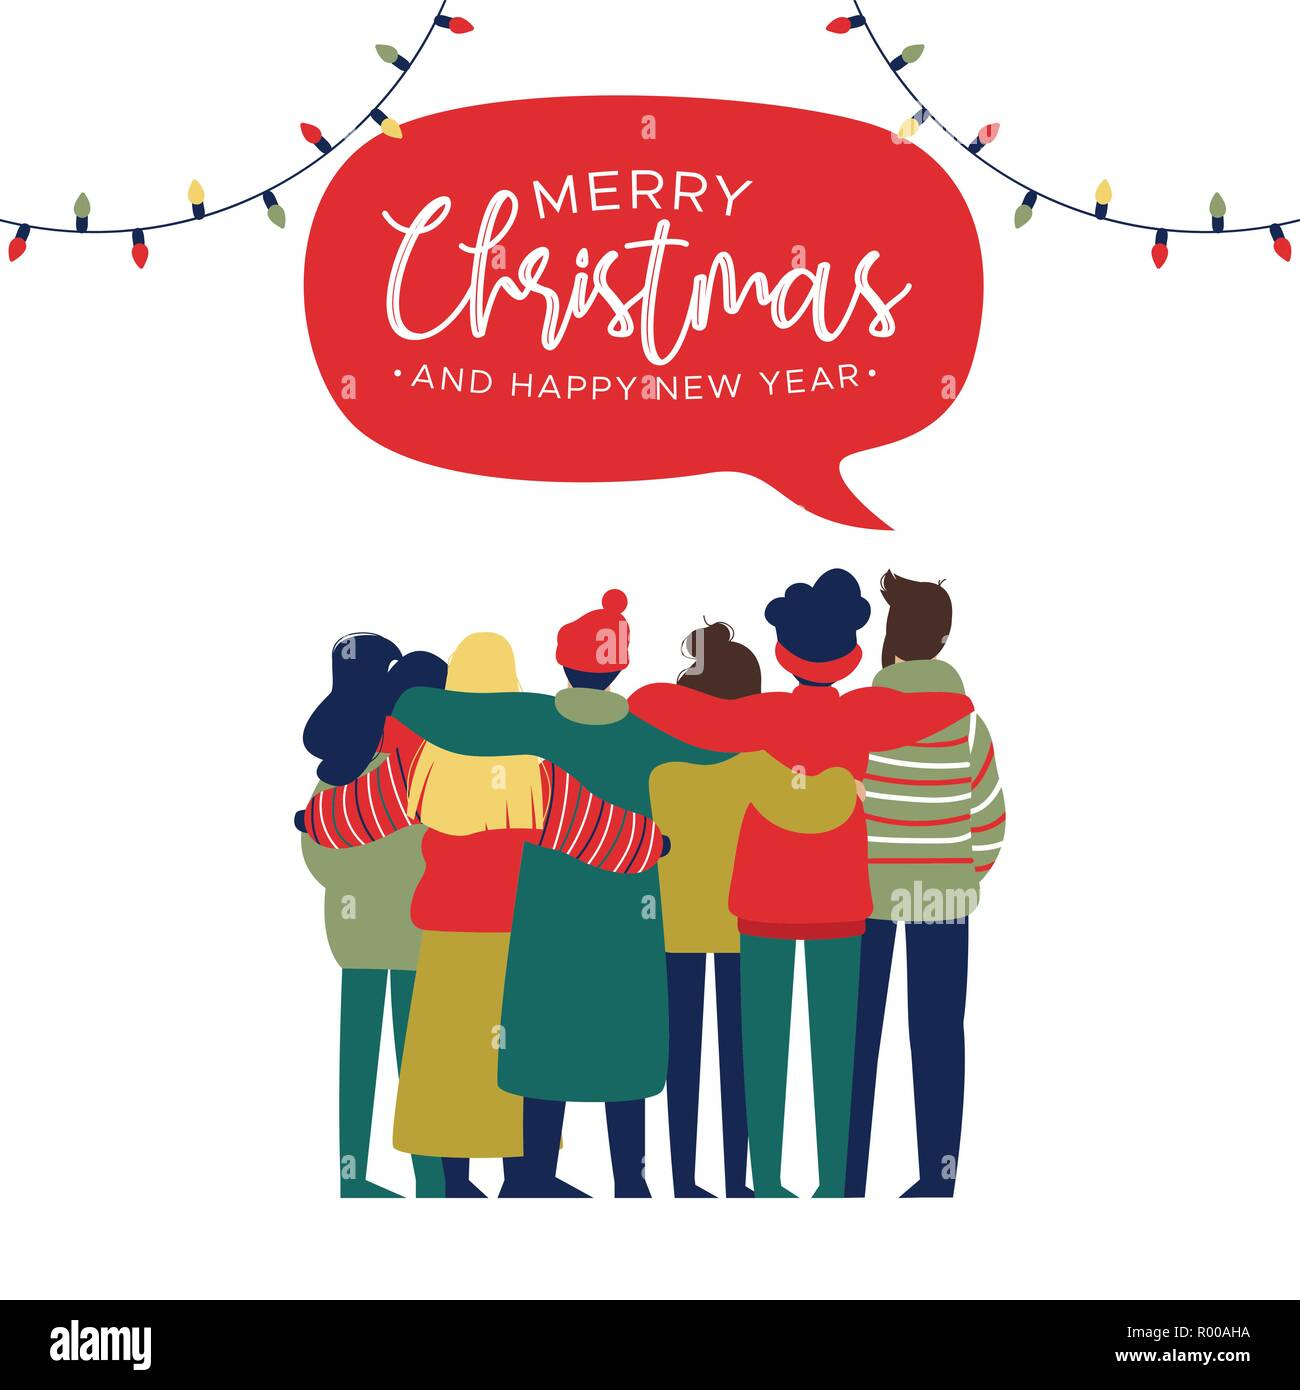 merry christmas and happy new year greeting card illustration of young people friend group hugging together at holiday party diverse culture friends